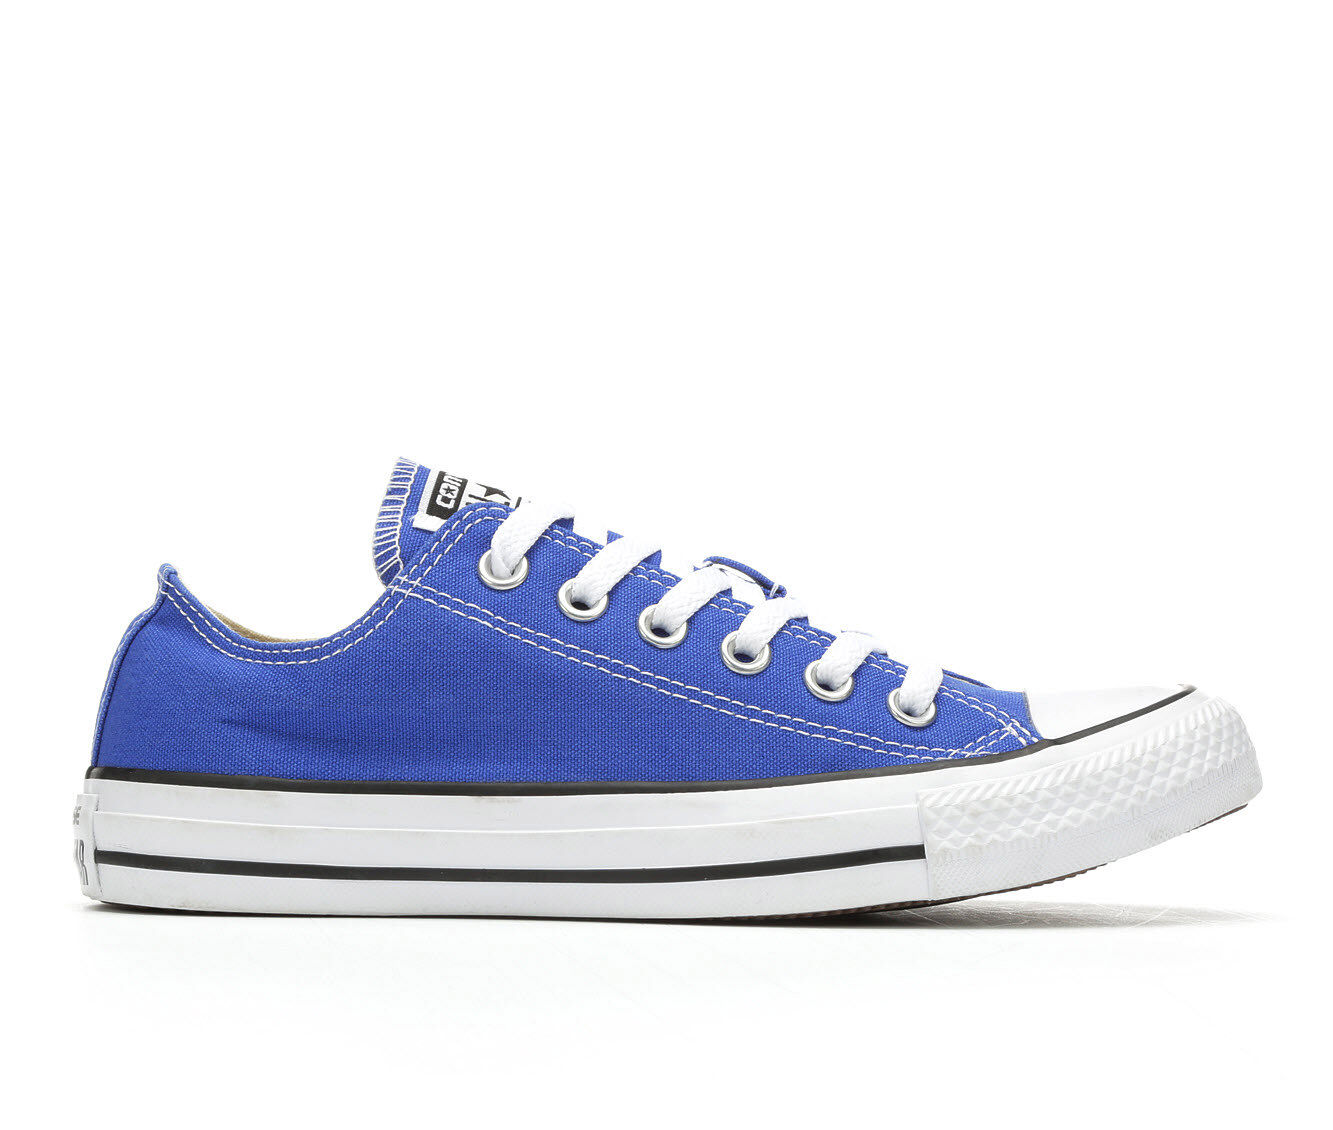 Adults' Converse Chuck Taylor Seasonal Sneakers Hyper Royal